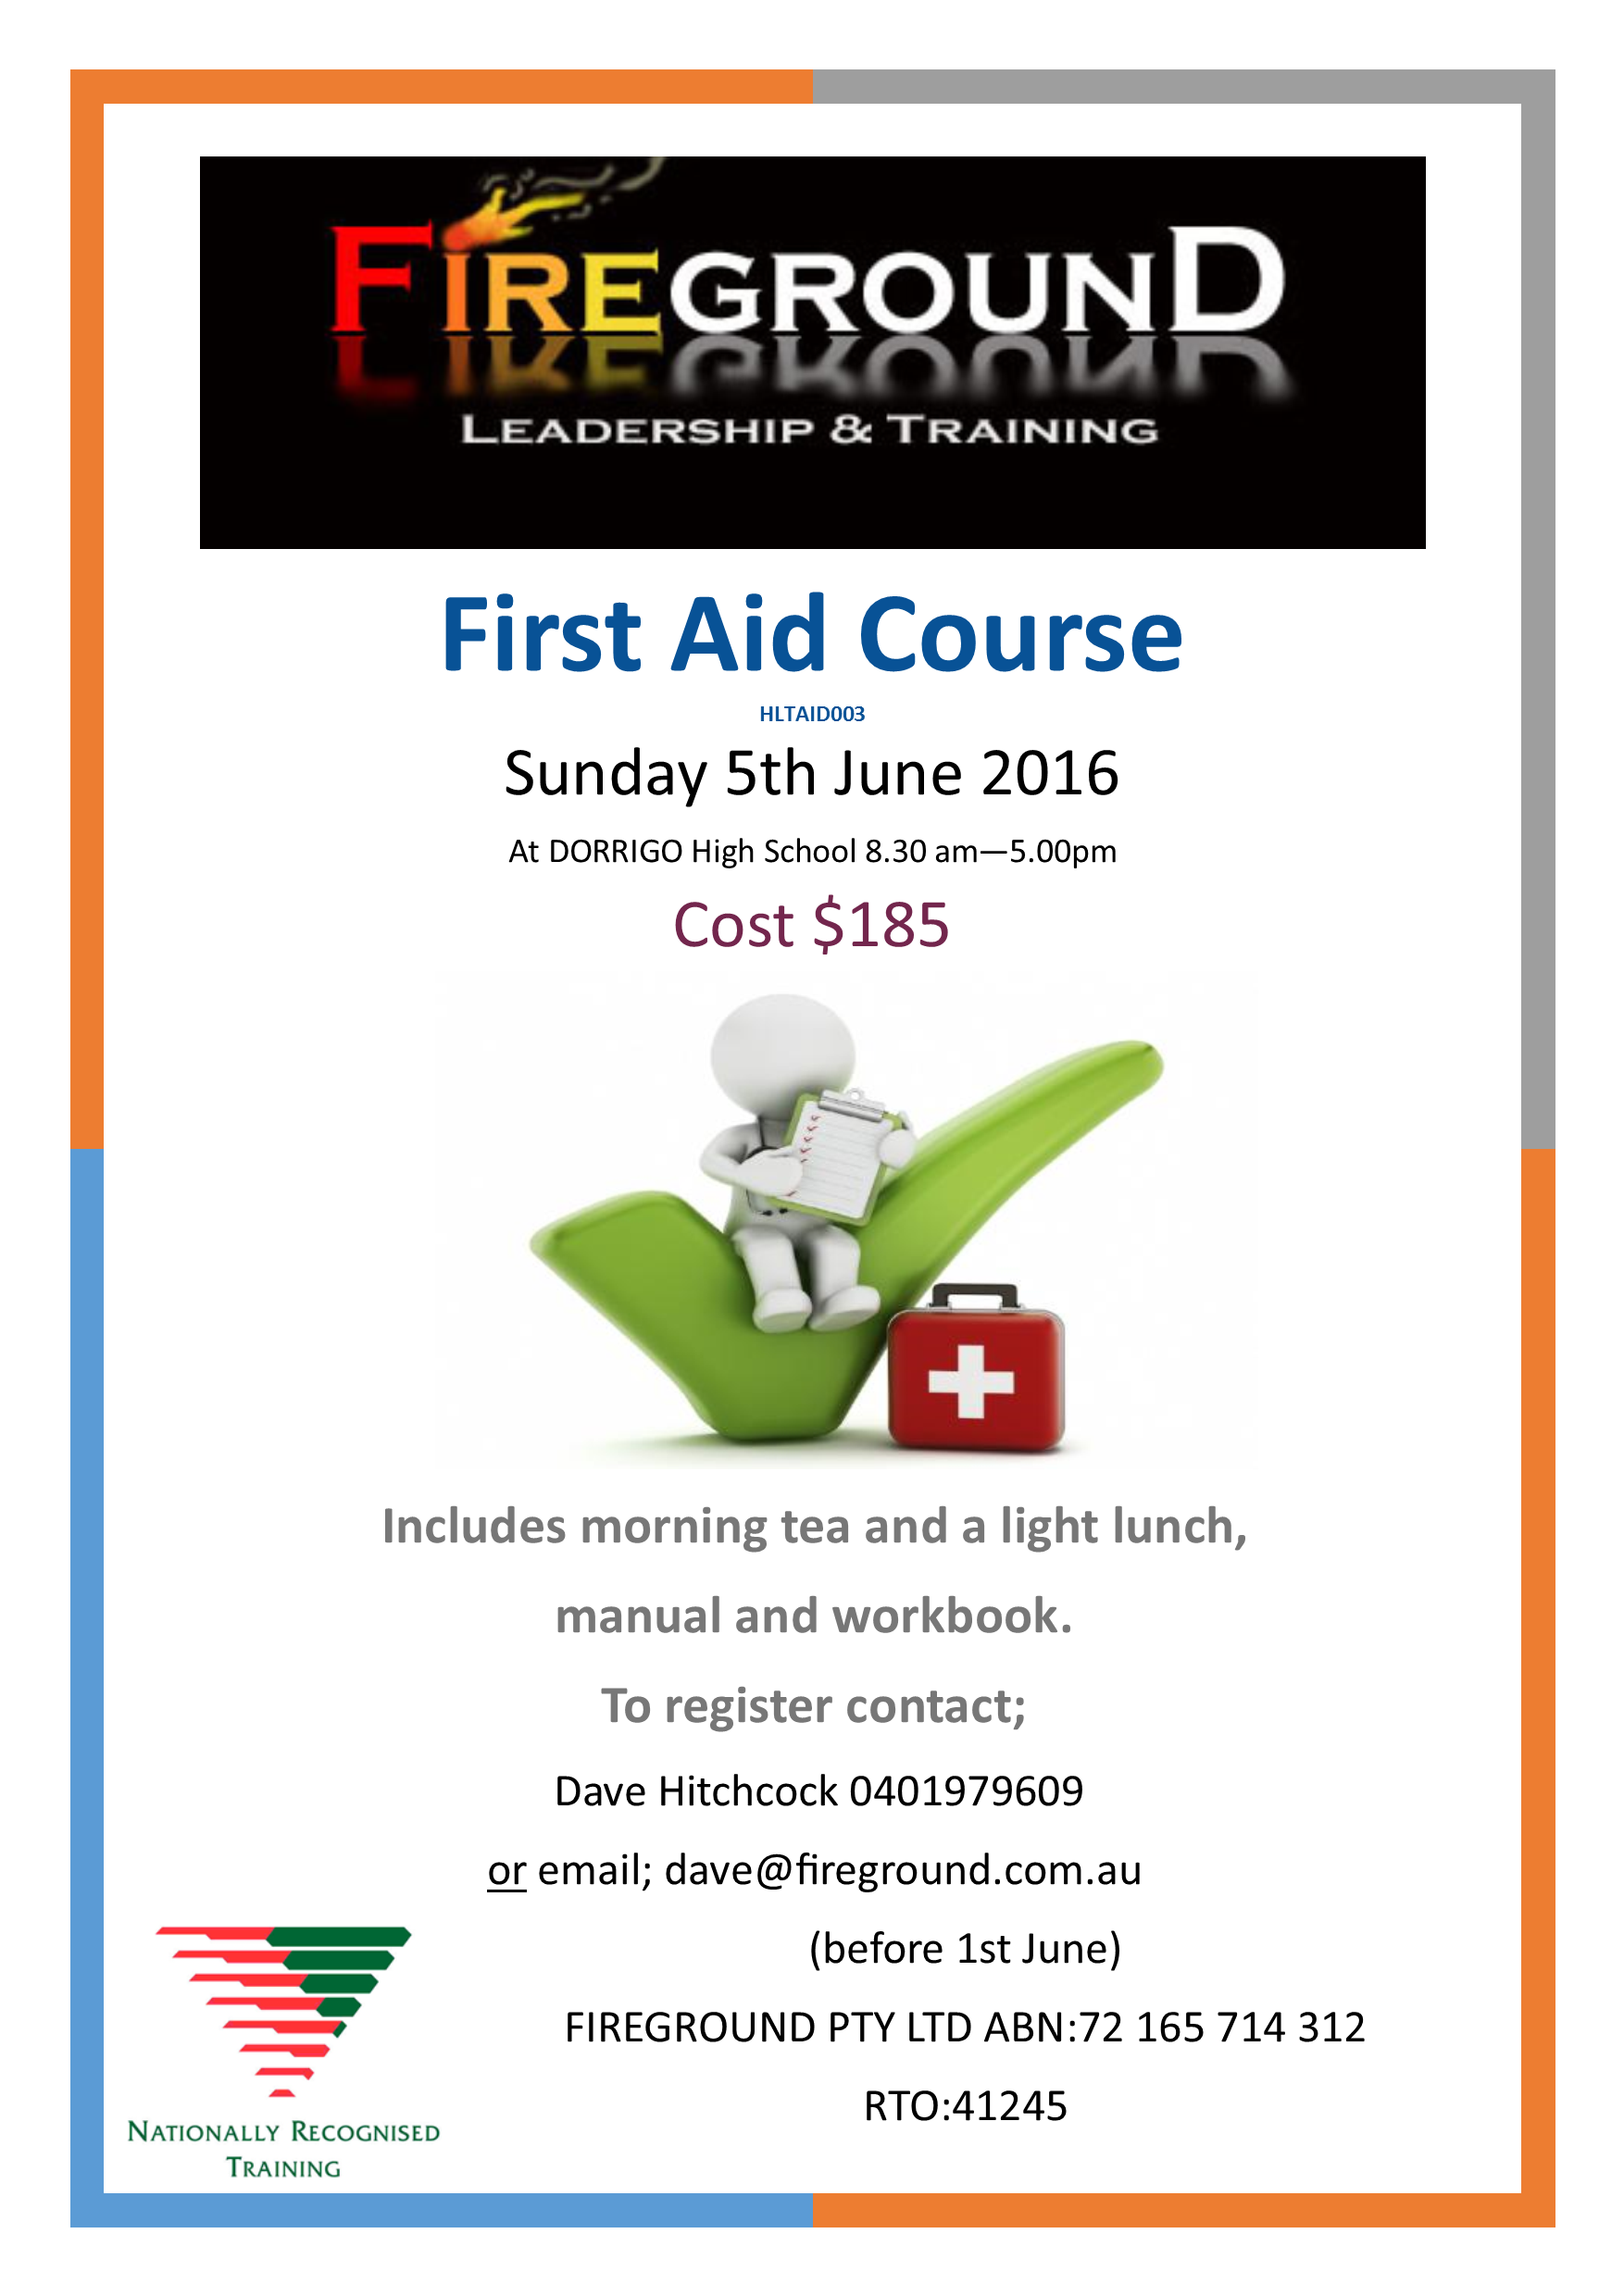 First Aid flyer 04032016 A3